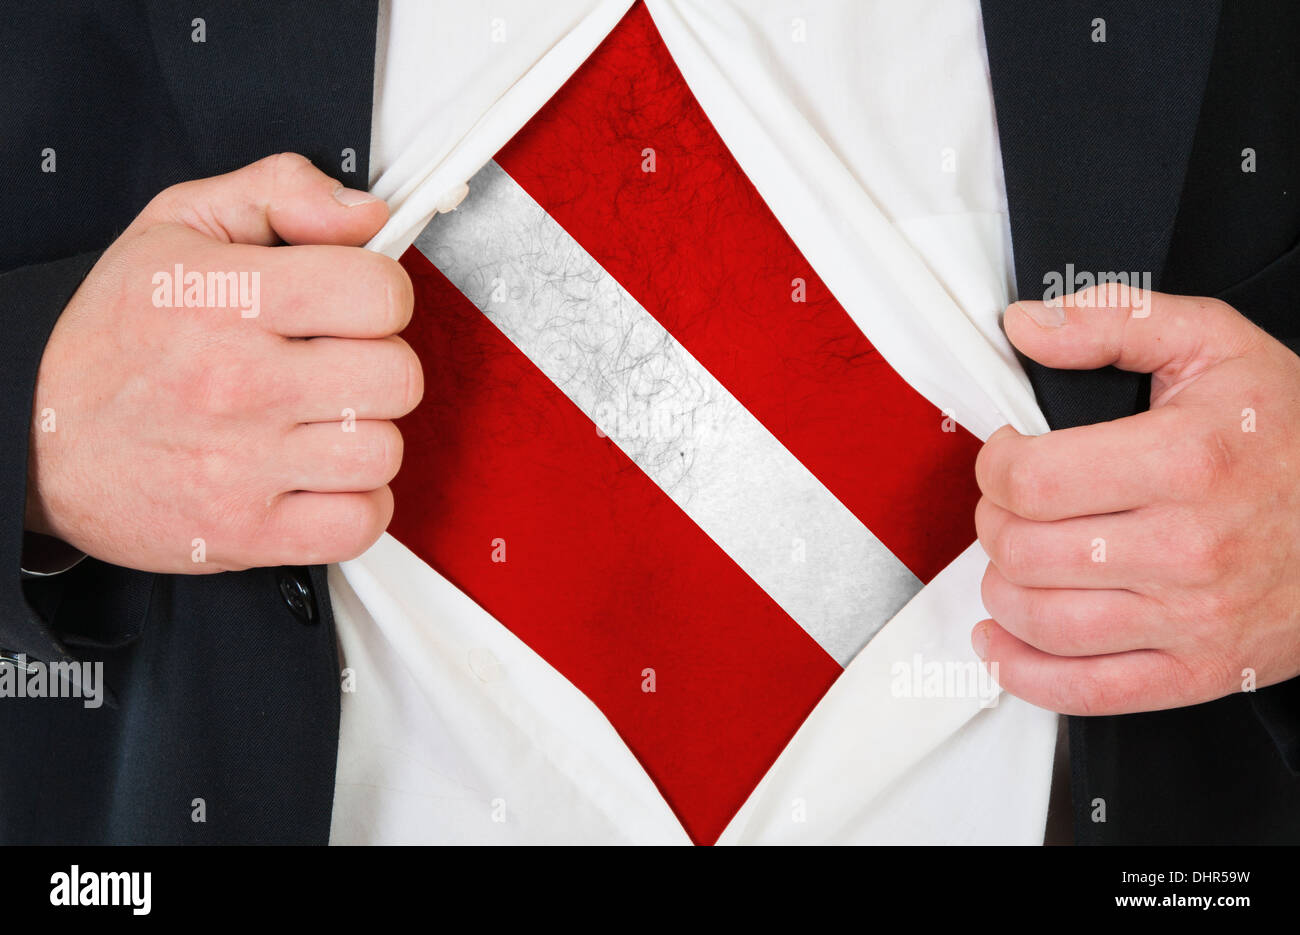 The Latvian flag - Stock Image